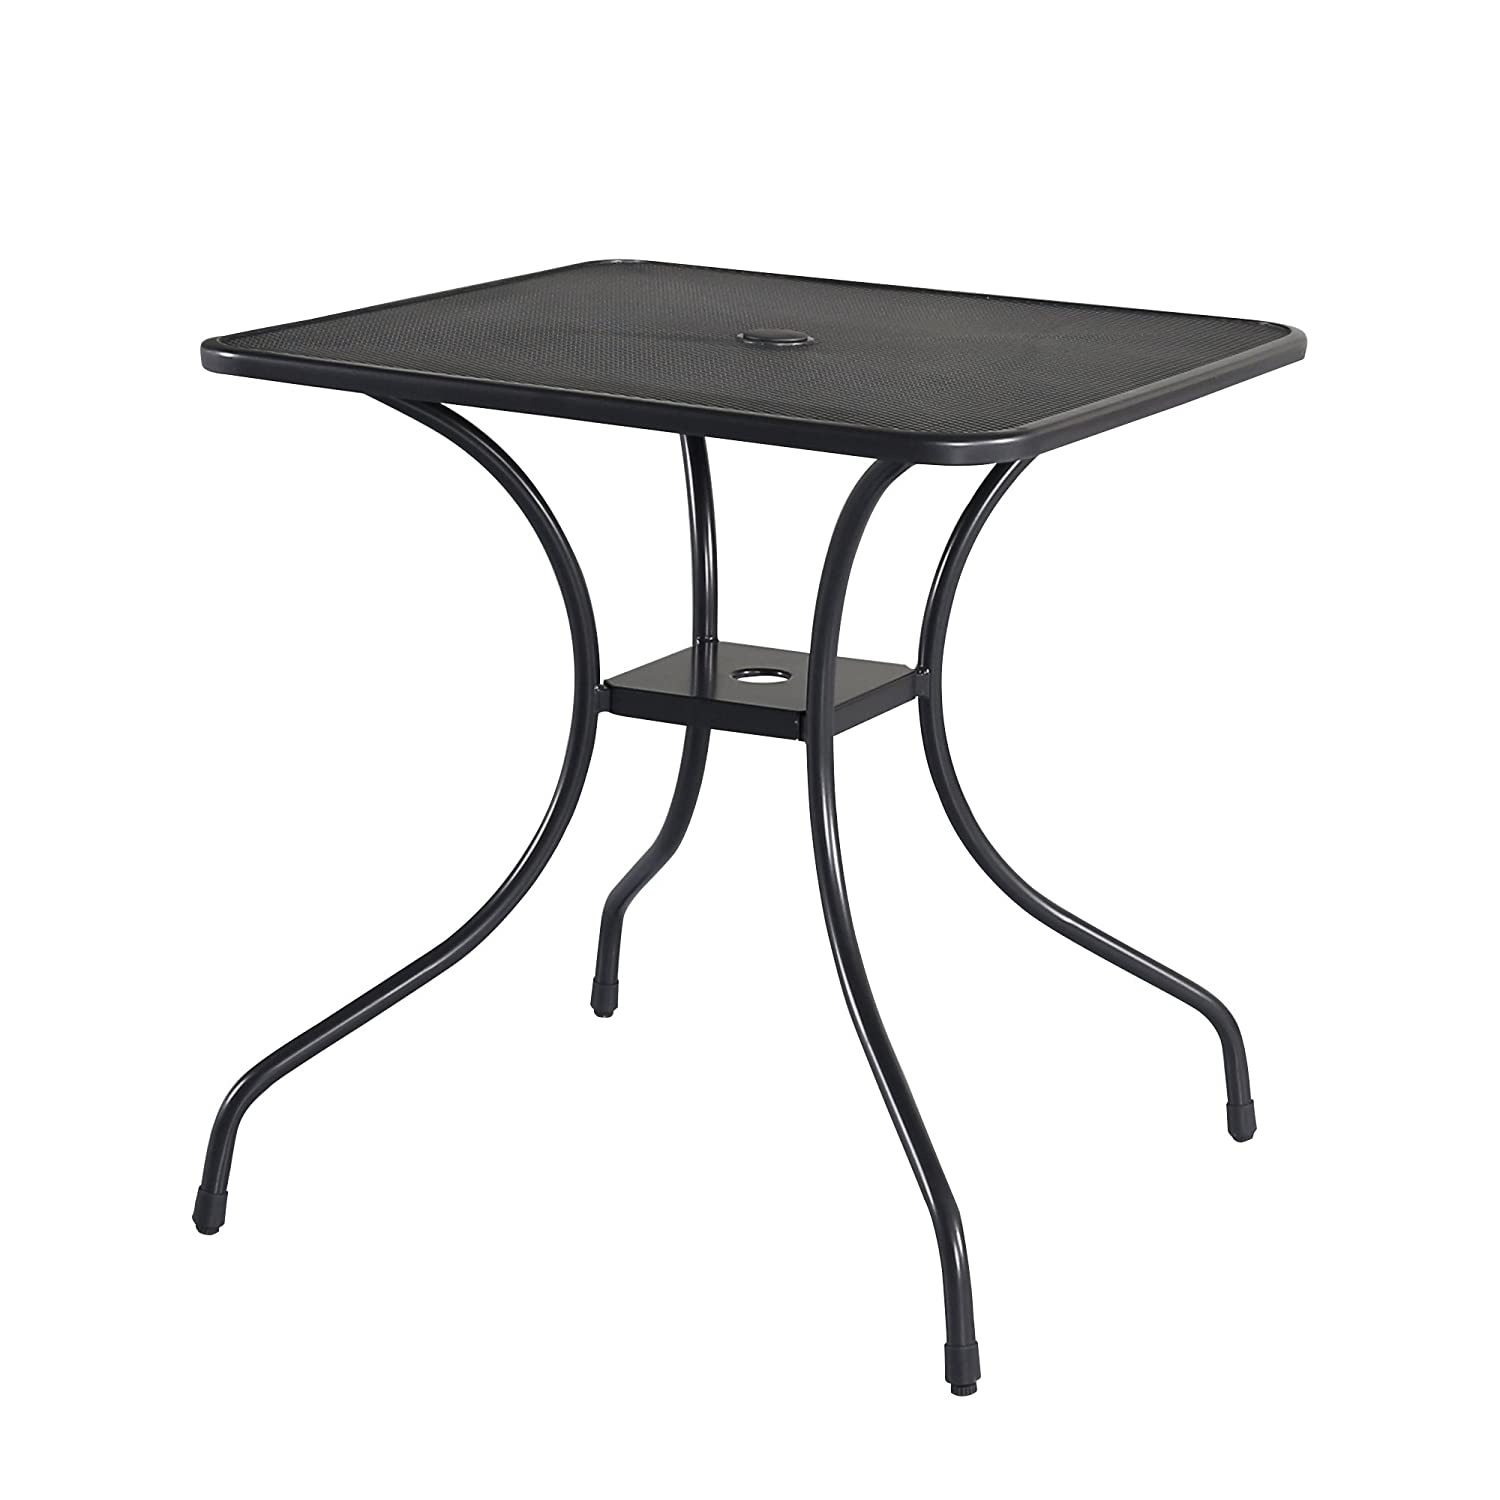 "Cloud Mountain 28"" x 28"" Outdoor Dining Table Square Patio Bistro Table Powder-coated Steel Frame Top Umbrella Stand Deck Outdoor Garden Table, Ash Black"